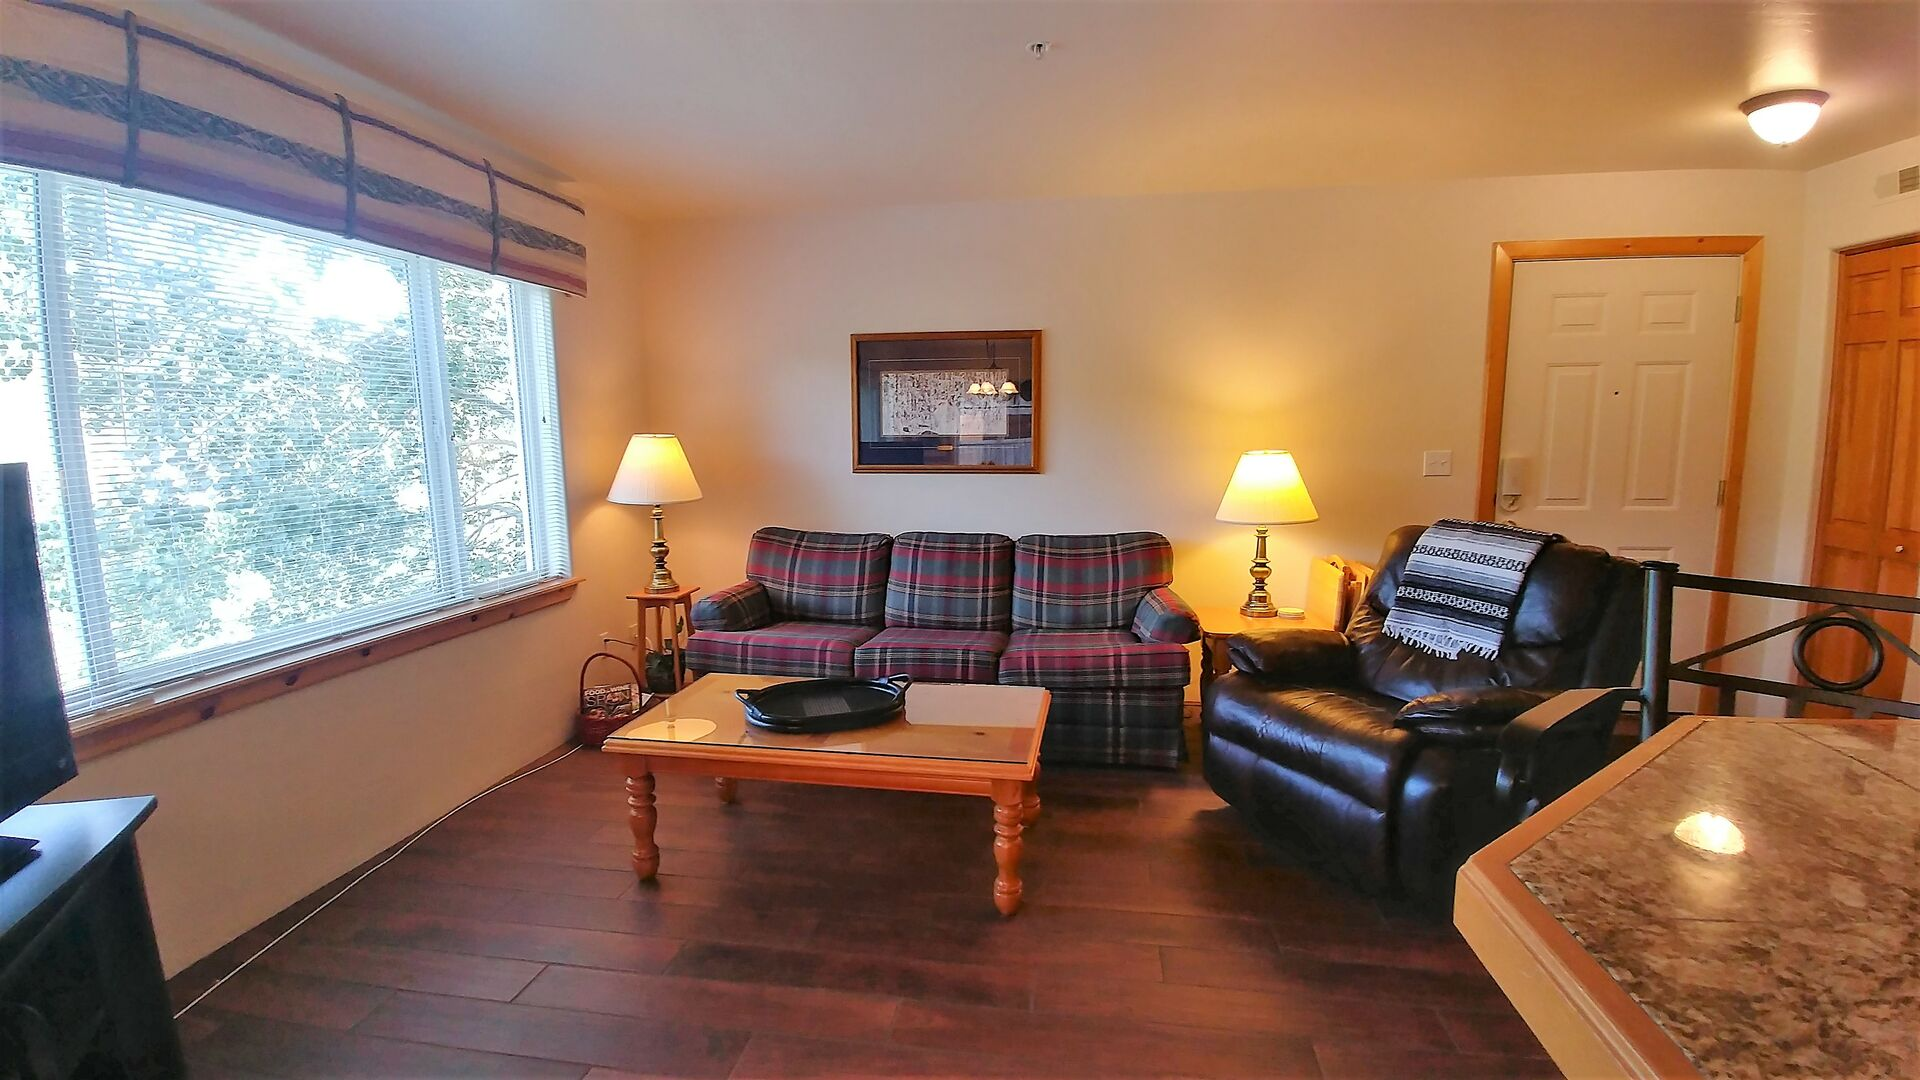 Living Area with Seating for 4 at Lodging near Telluride CO